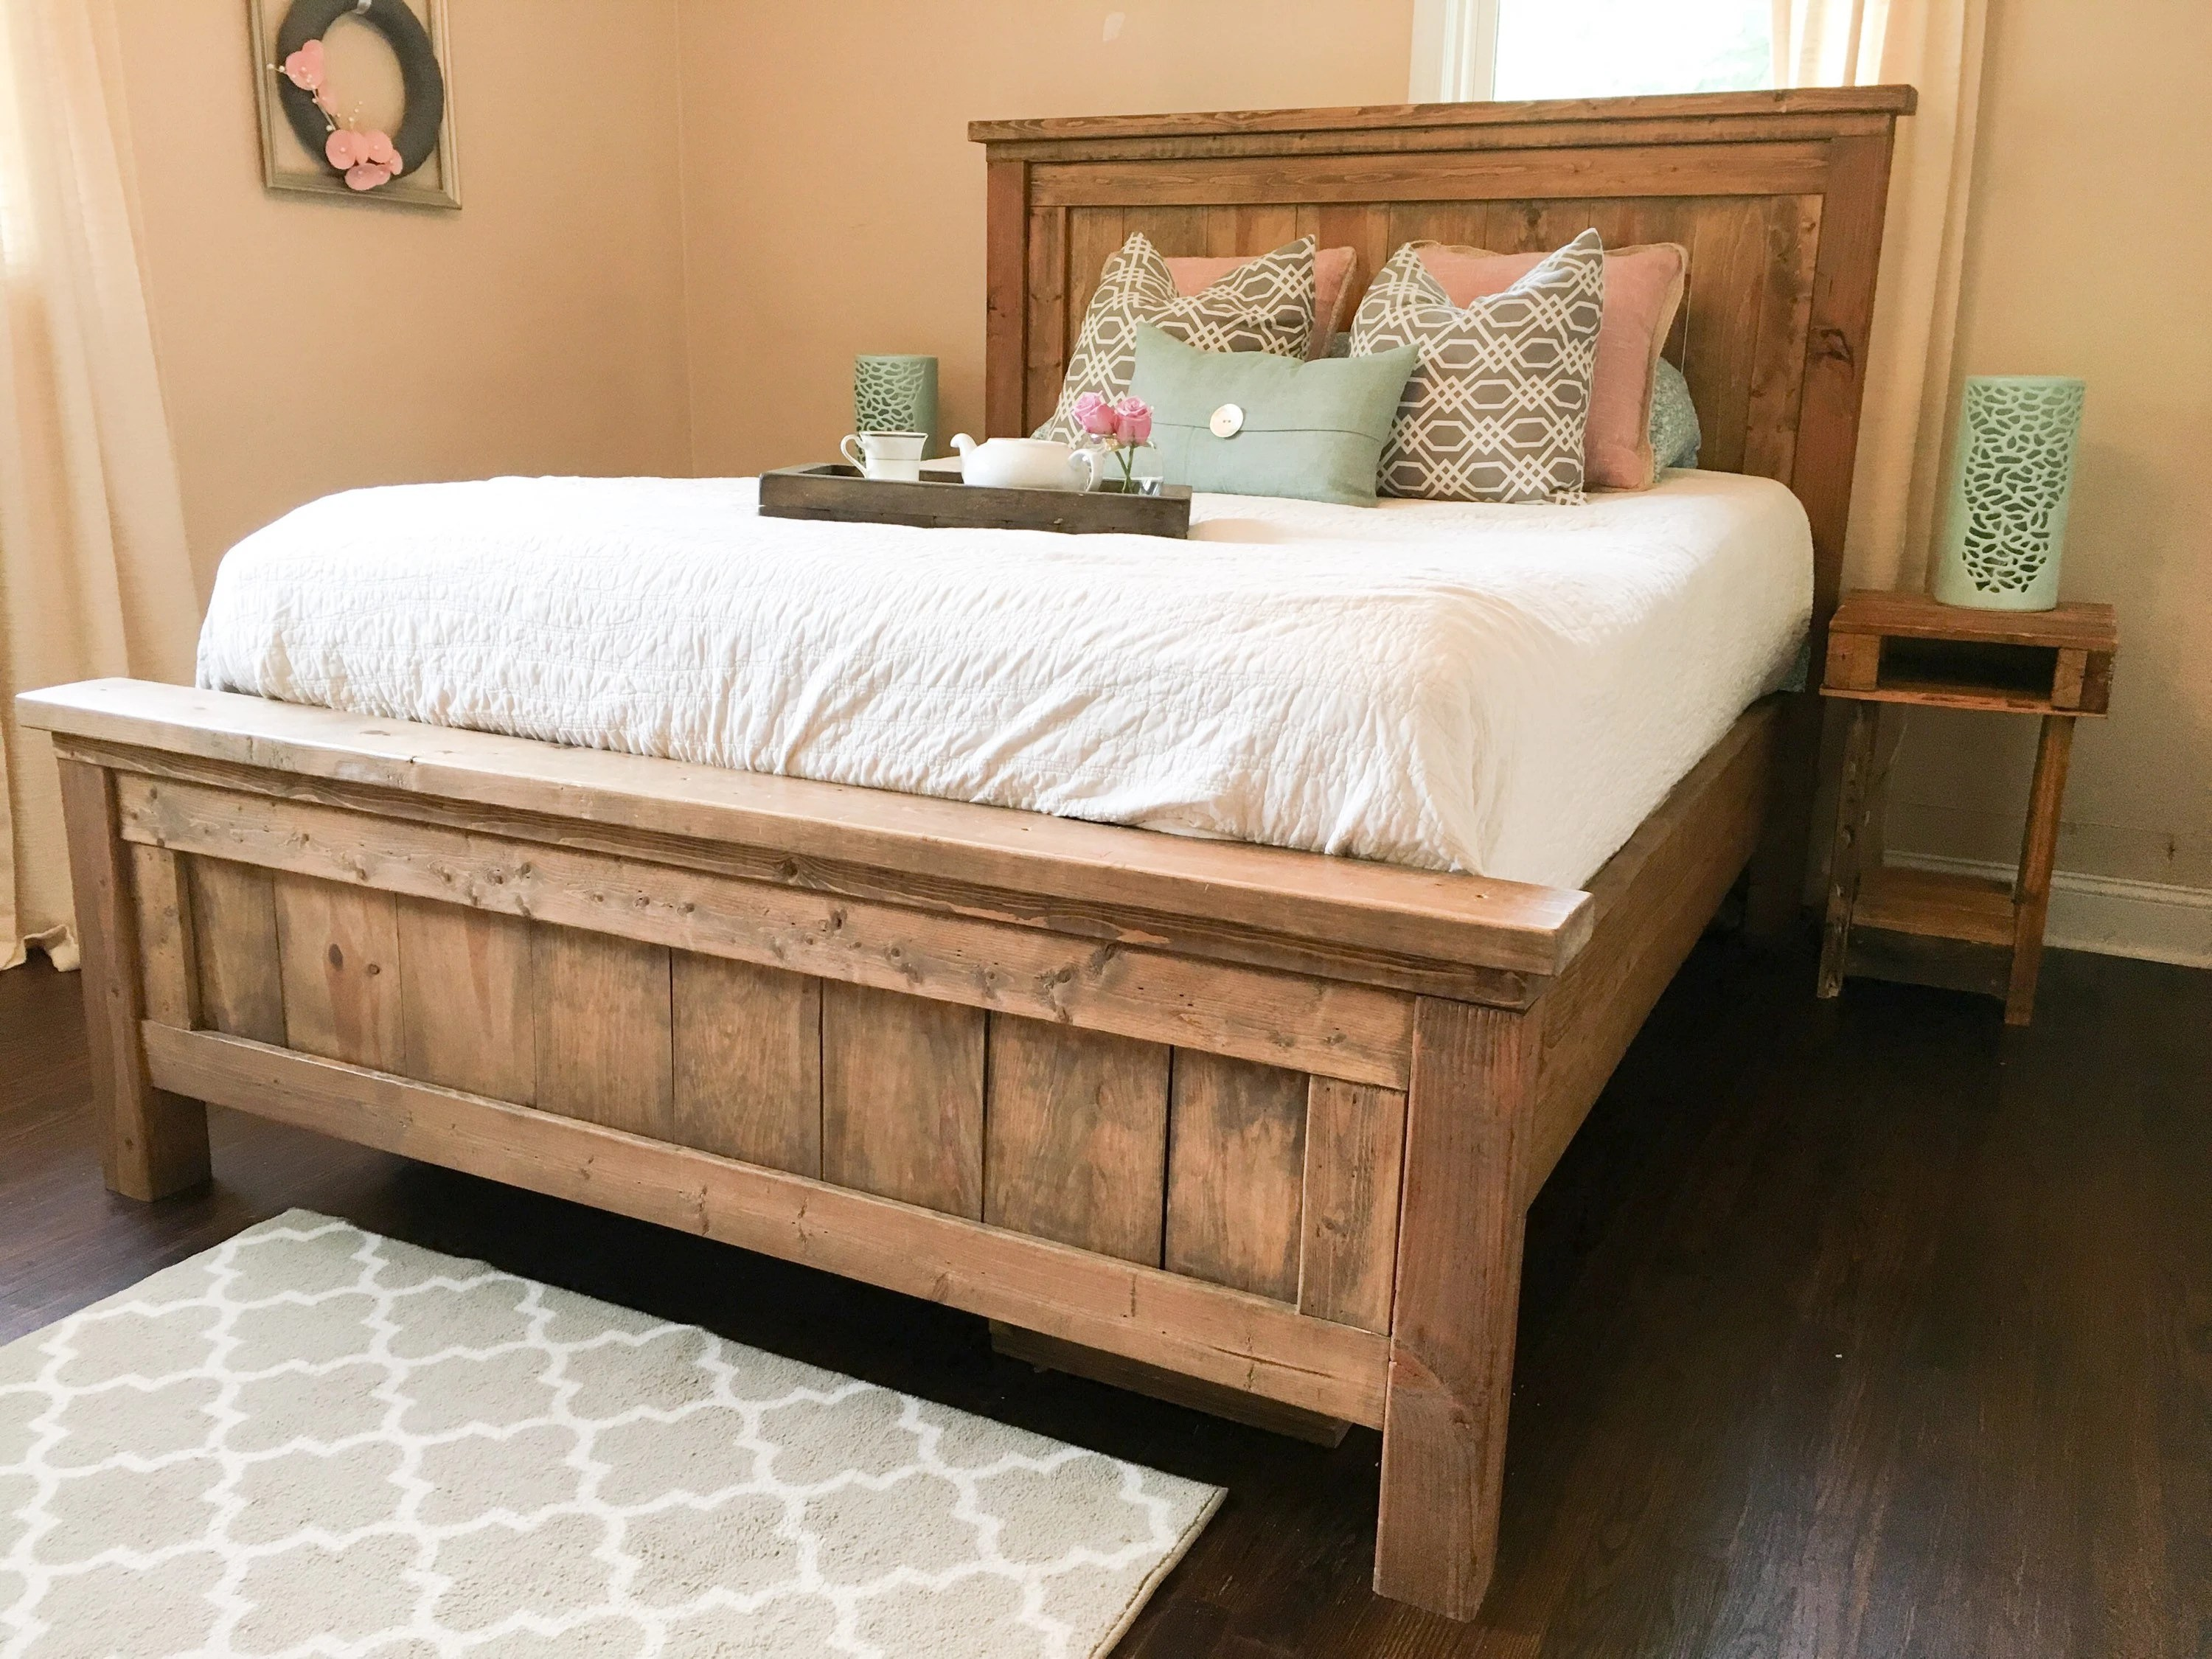 Farmhouse Contact Number Farmhouse Bed Rustic Furniture Wooden Bed Please Contact